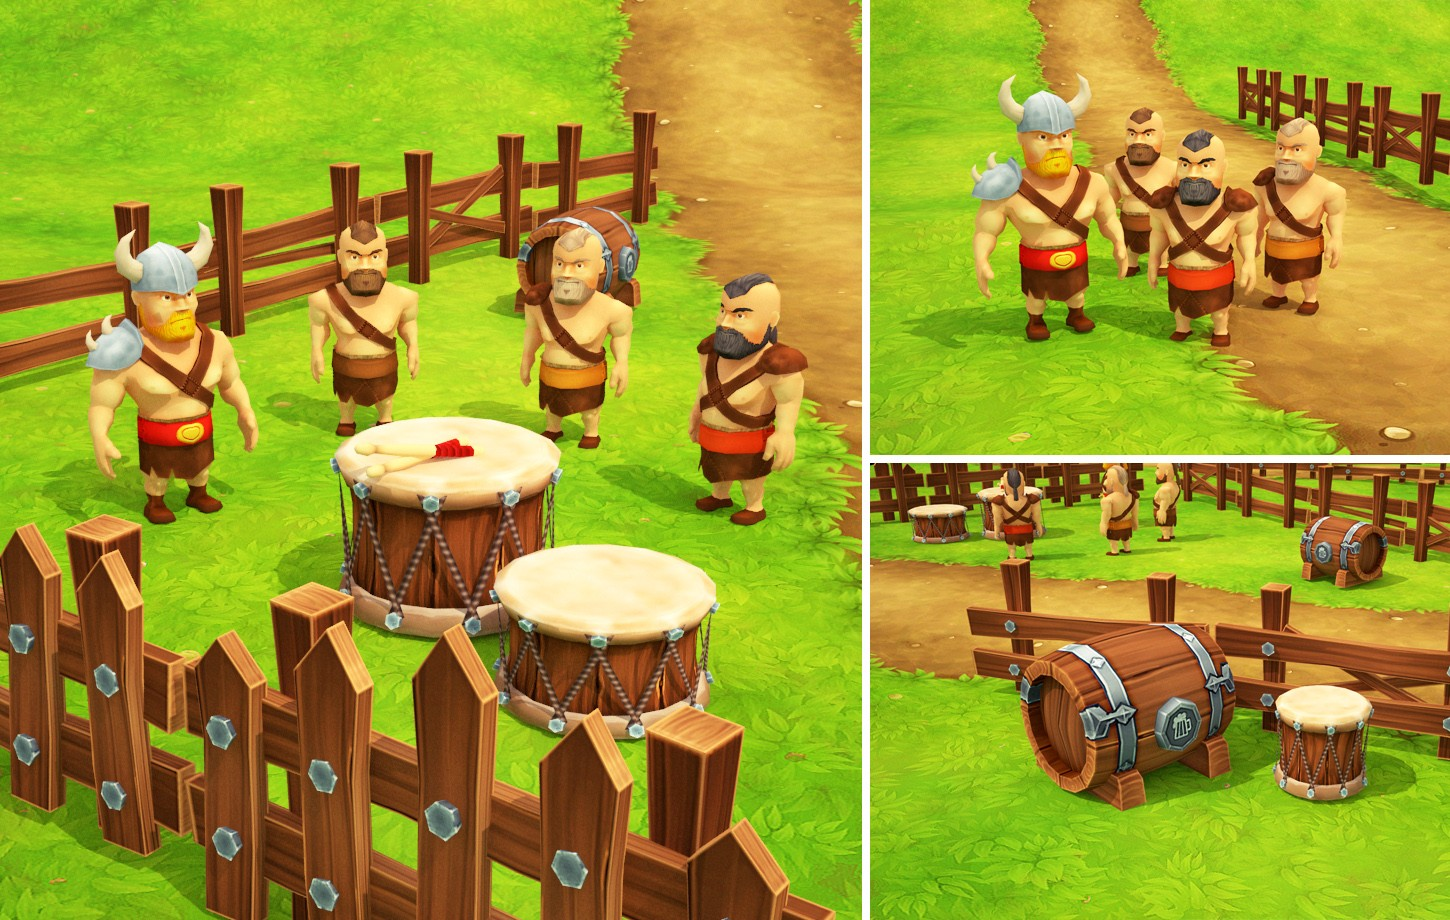 Viking Tune - 3D game assets and animations